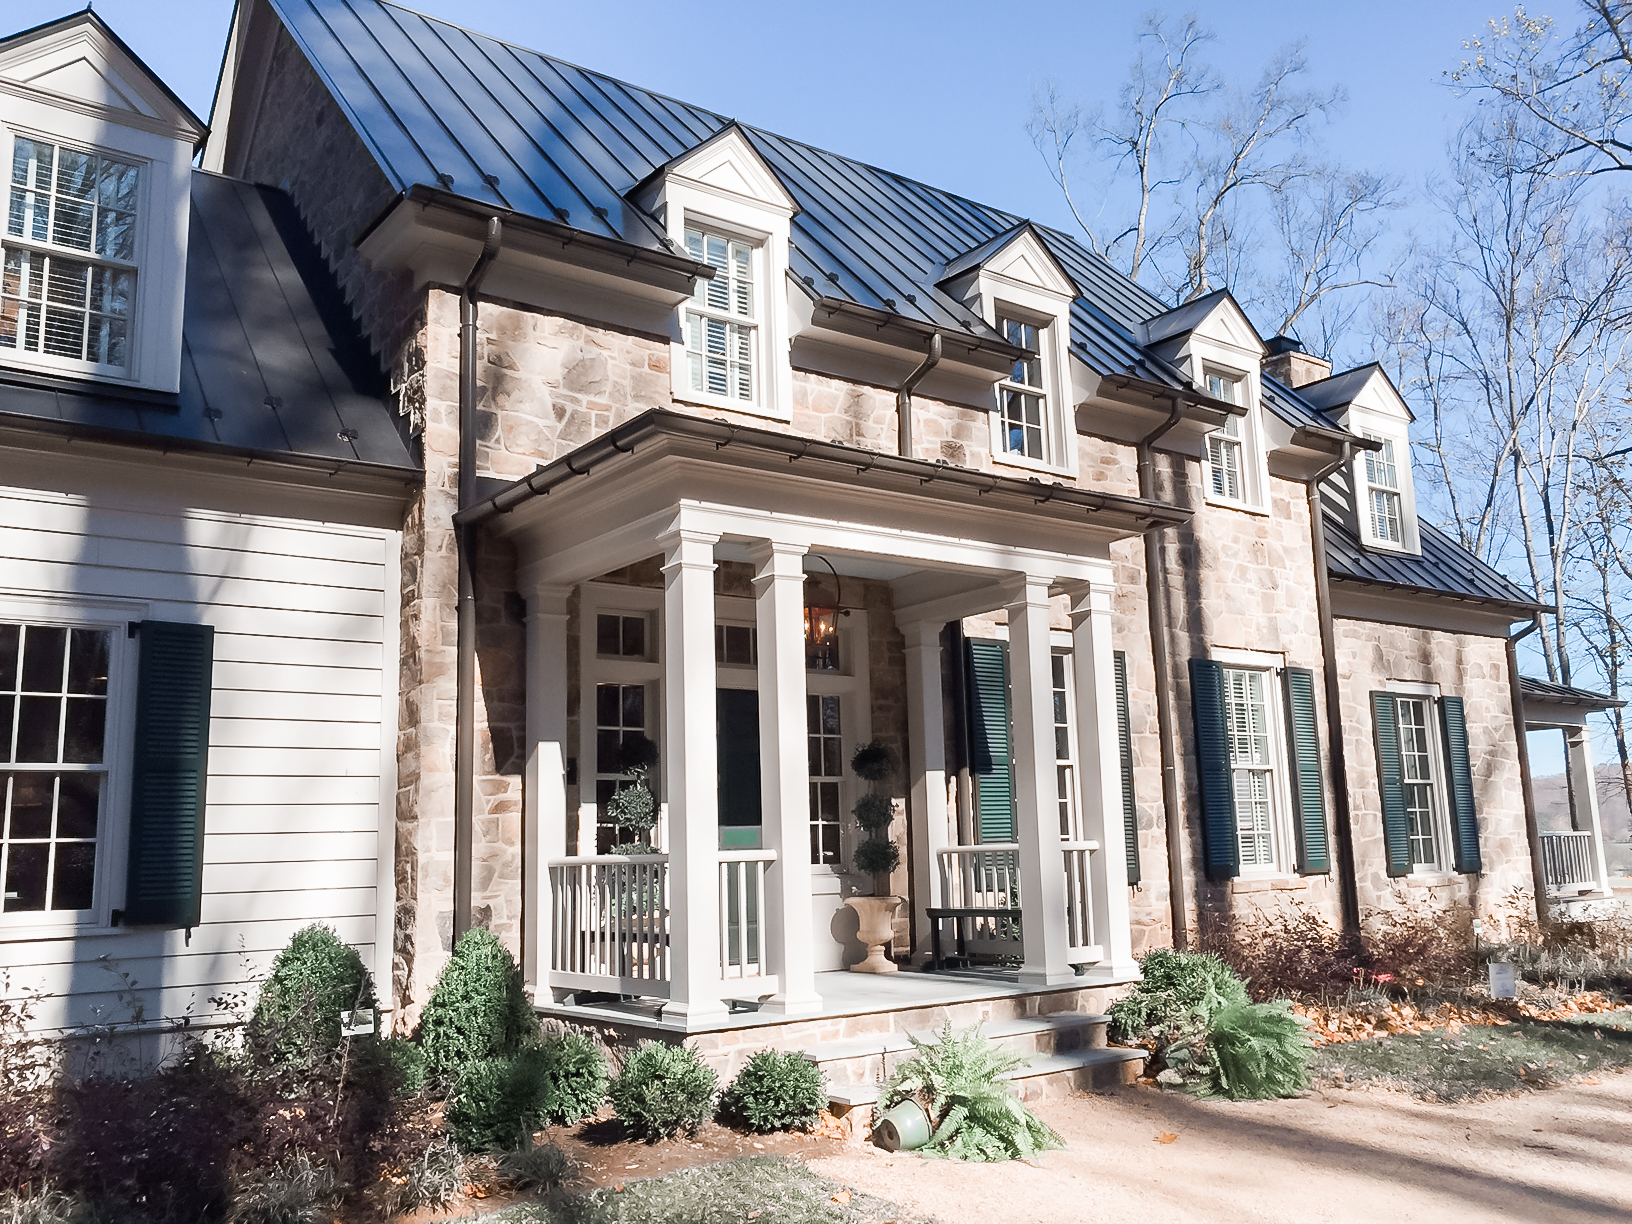 Southern Living Magazine Idea Home - Andrea Rodway Photography-12.jpg